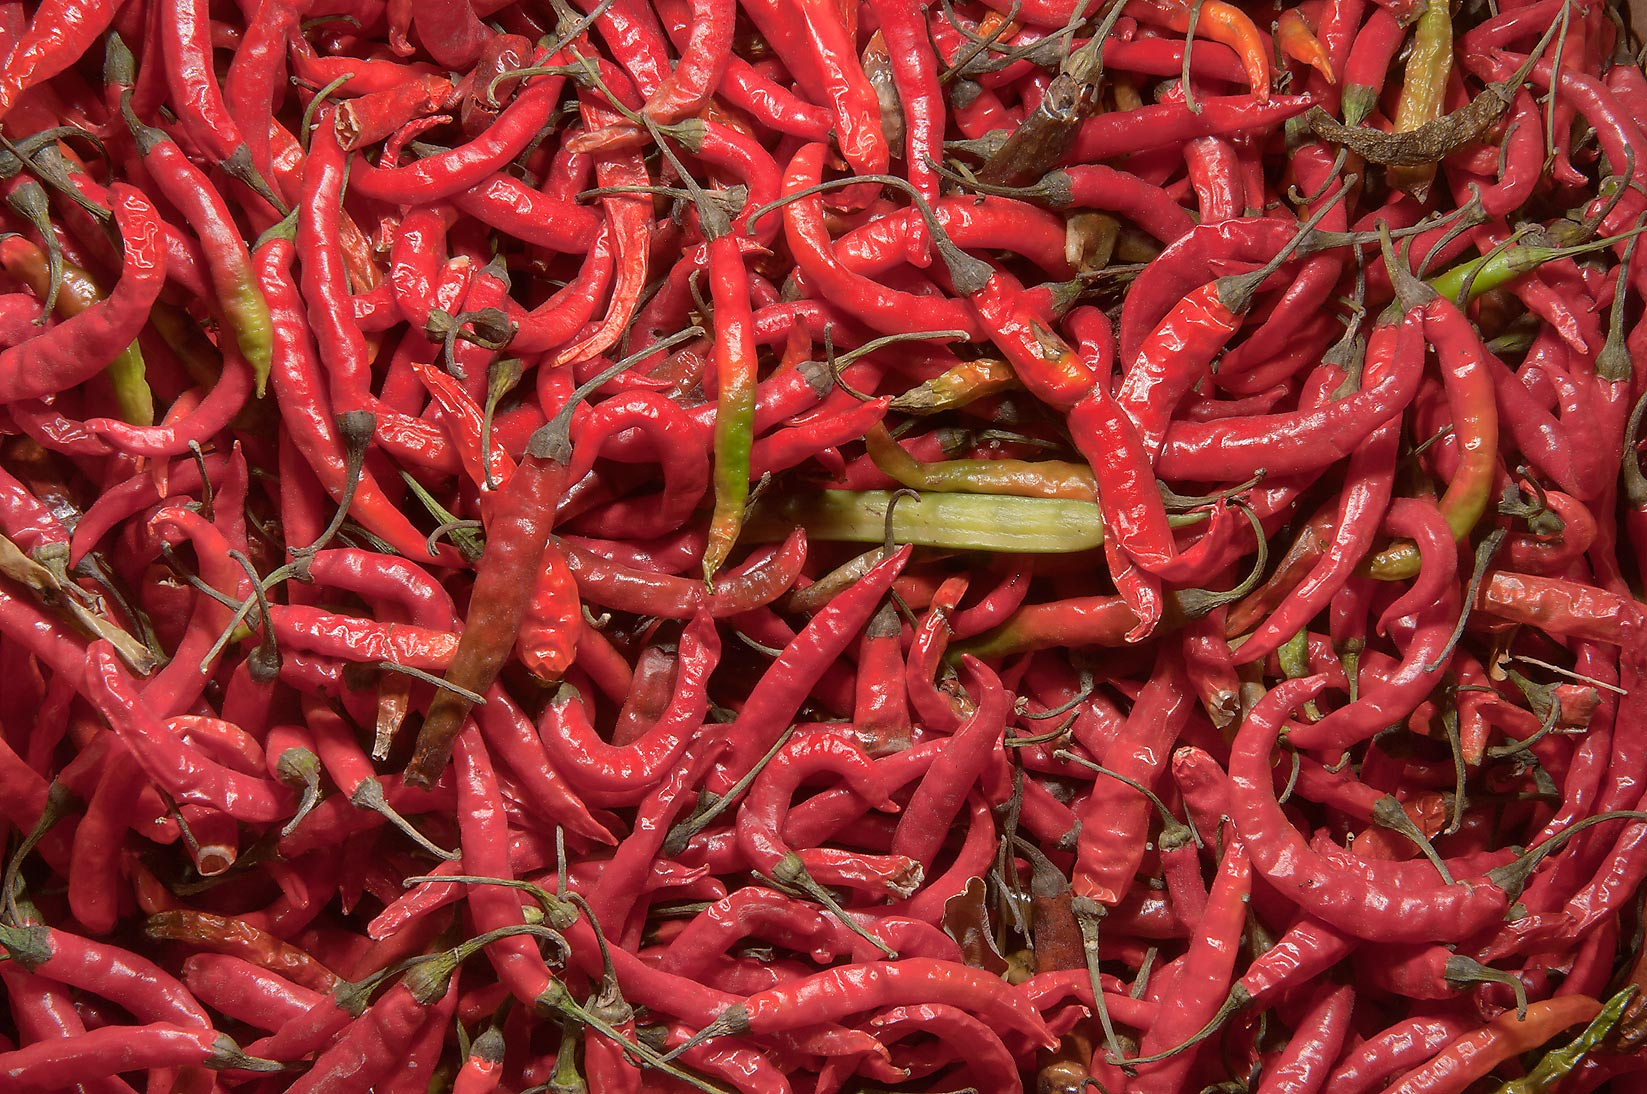 Red hot pepper in Vegetable Market, Wholesale Markets area. Doha, Qatar